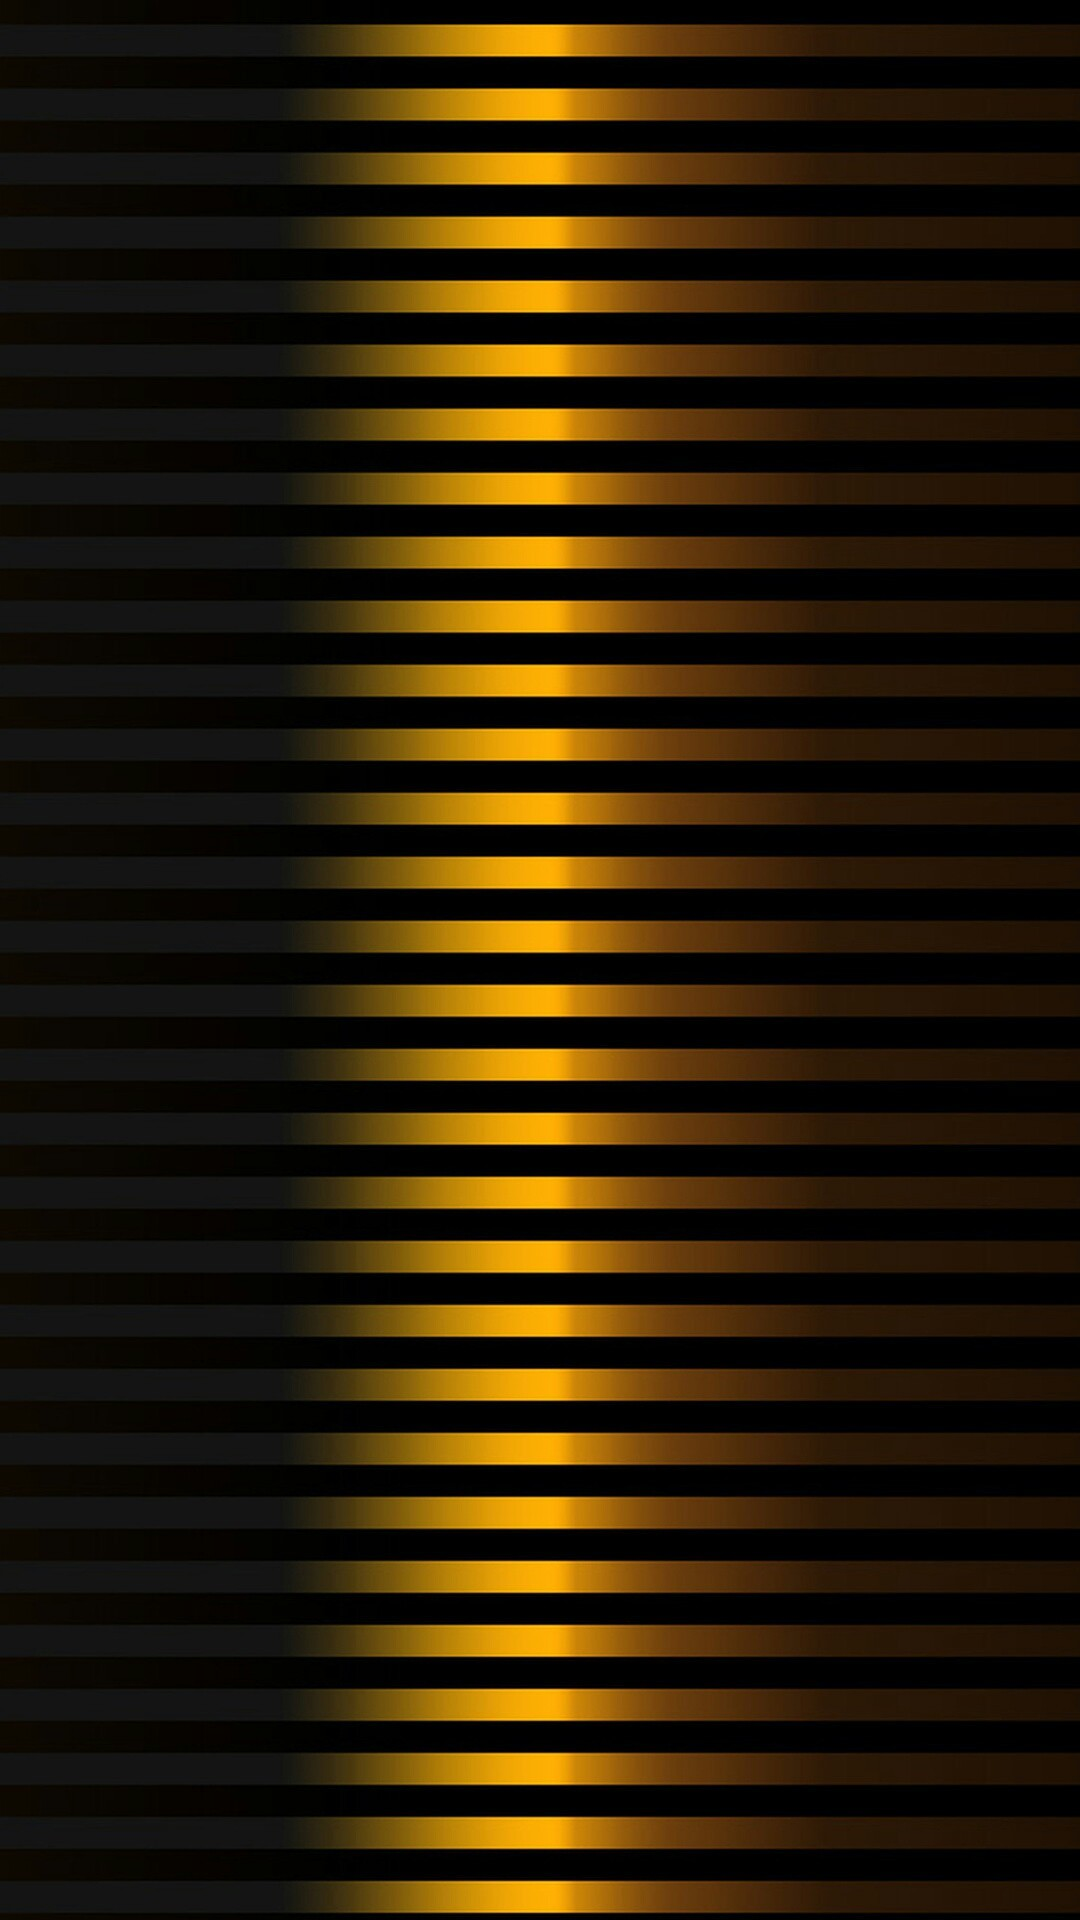 Gold and Black Wallpaper